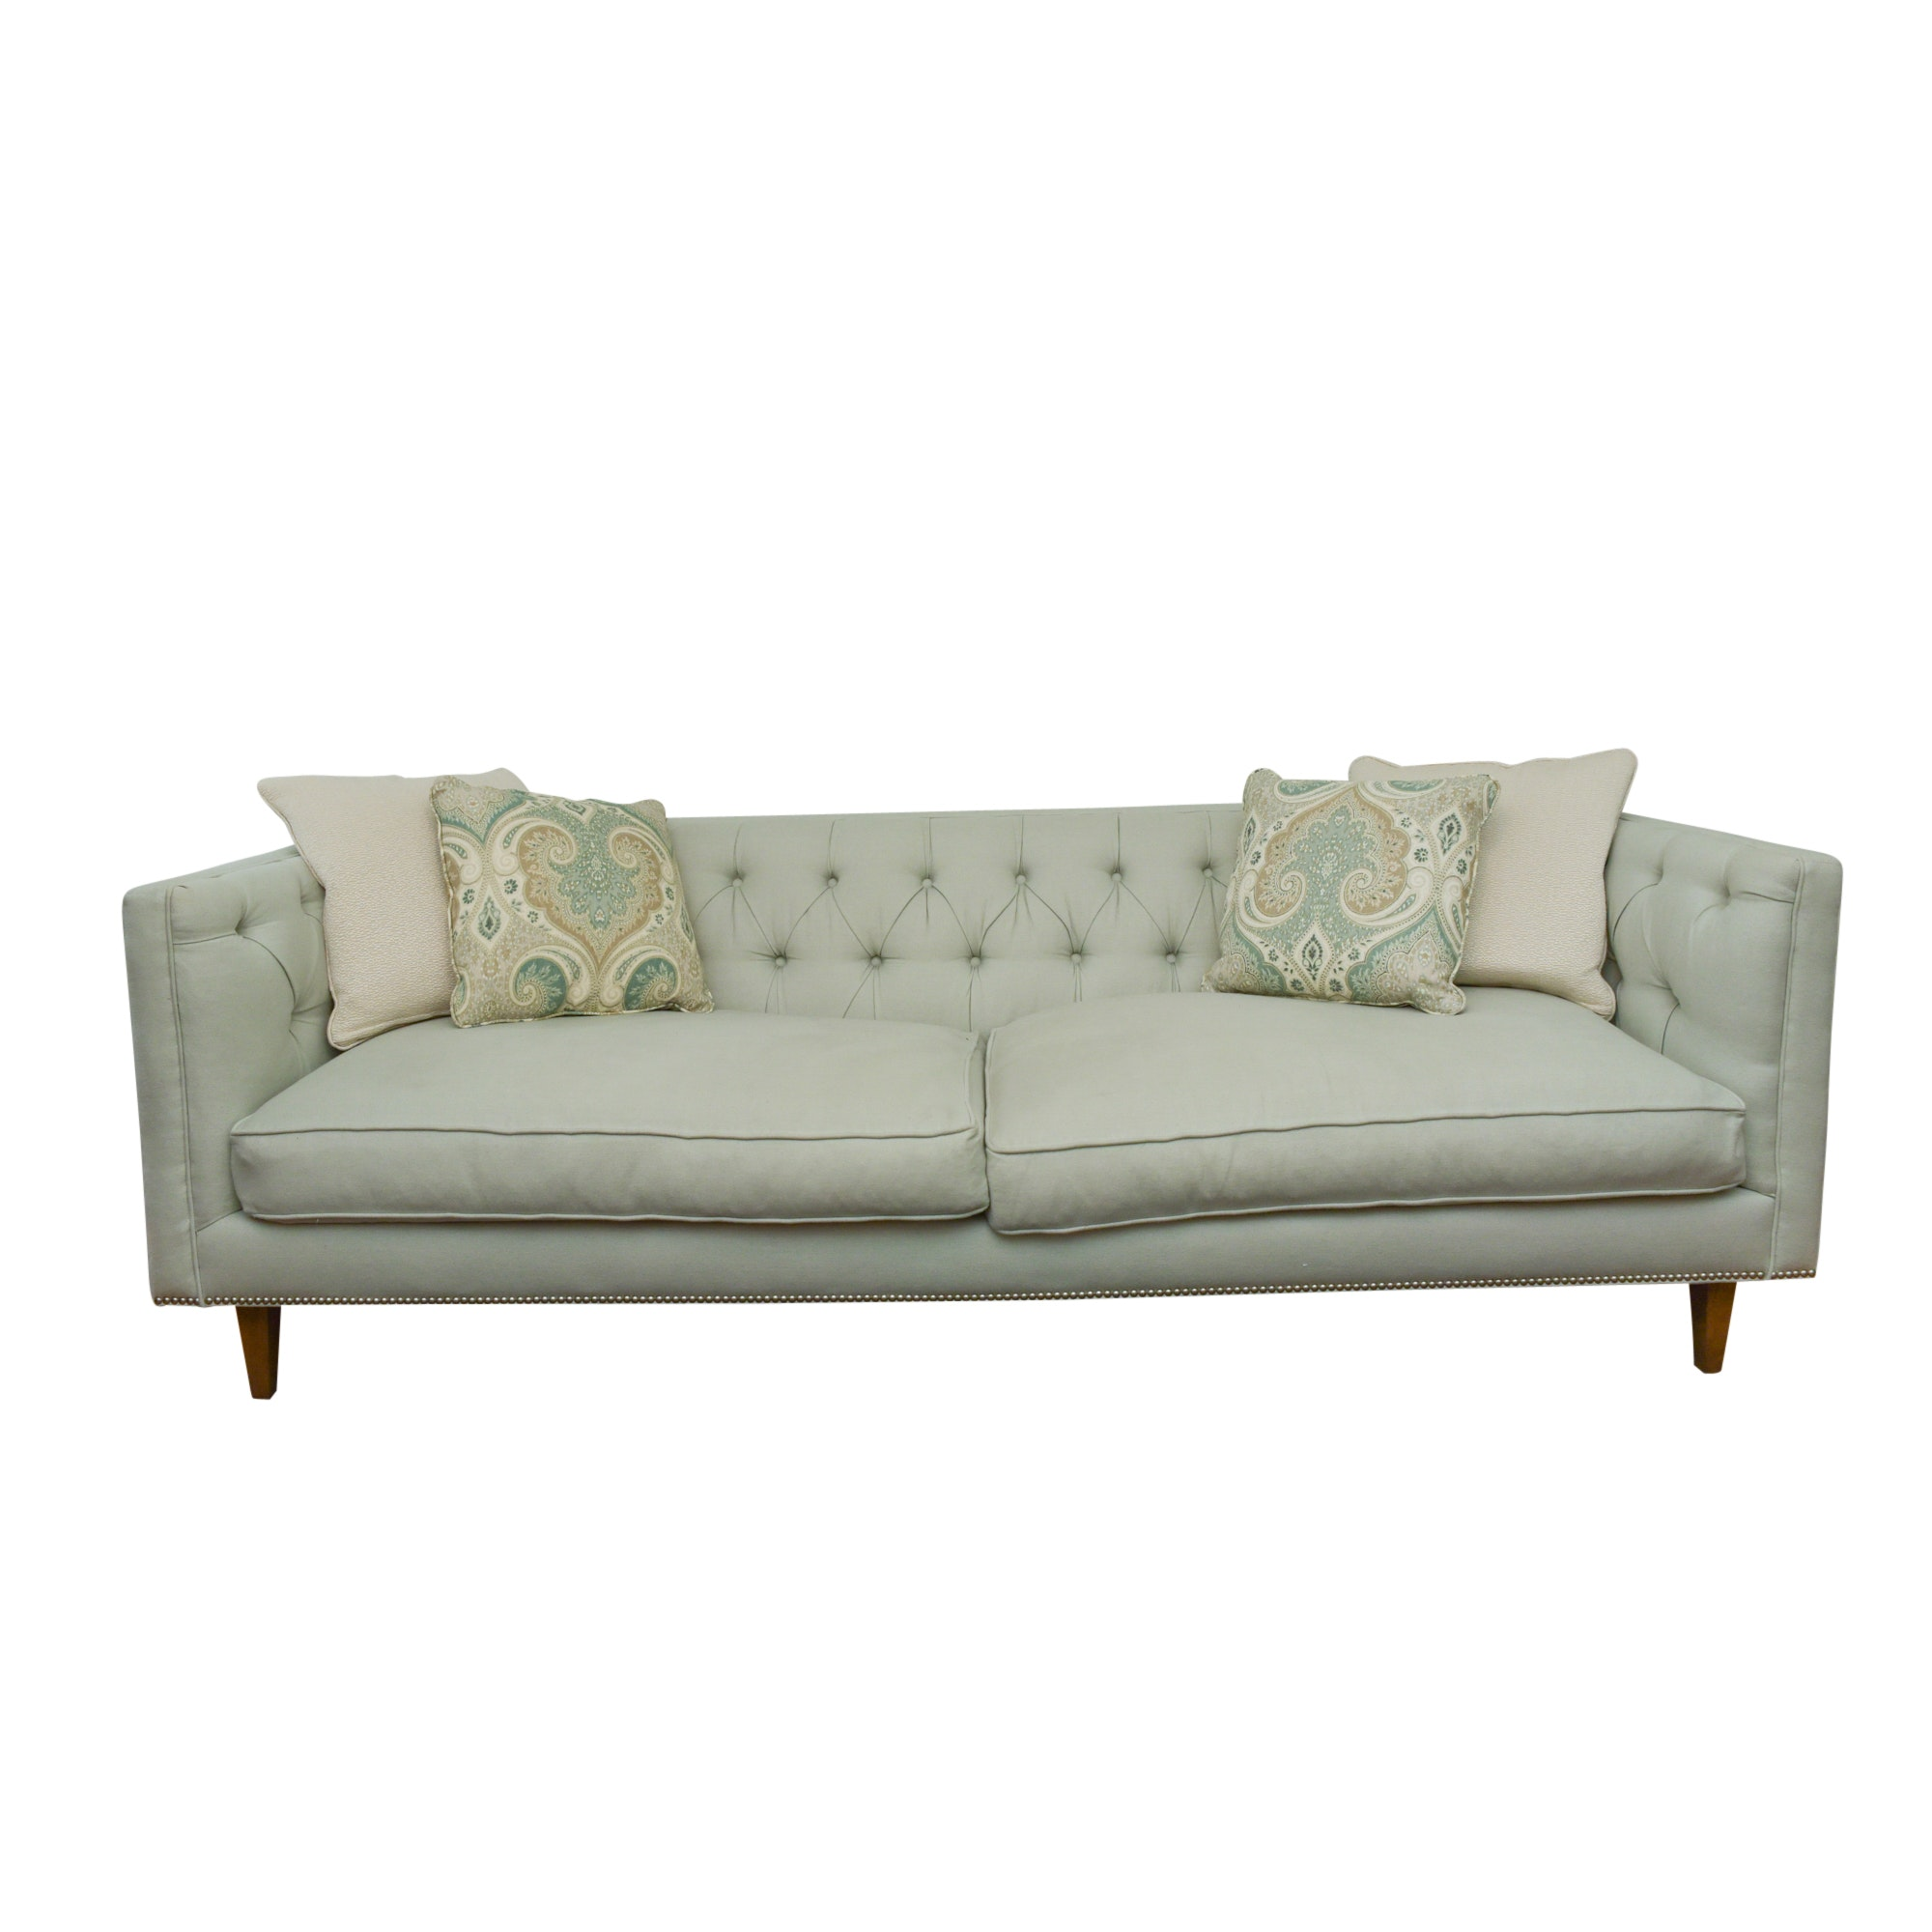 Contemporary Upholstered Box Sofa by Robin Bruce